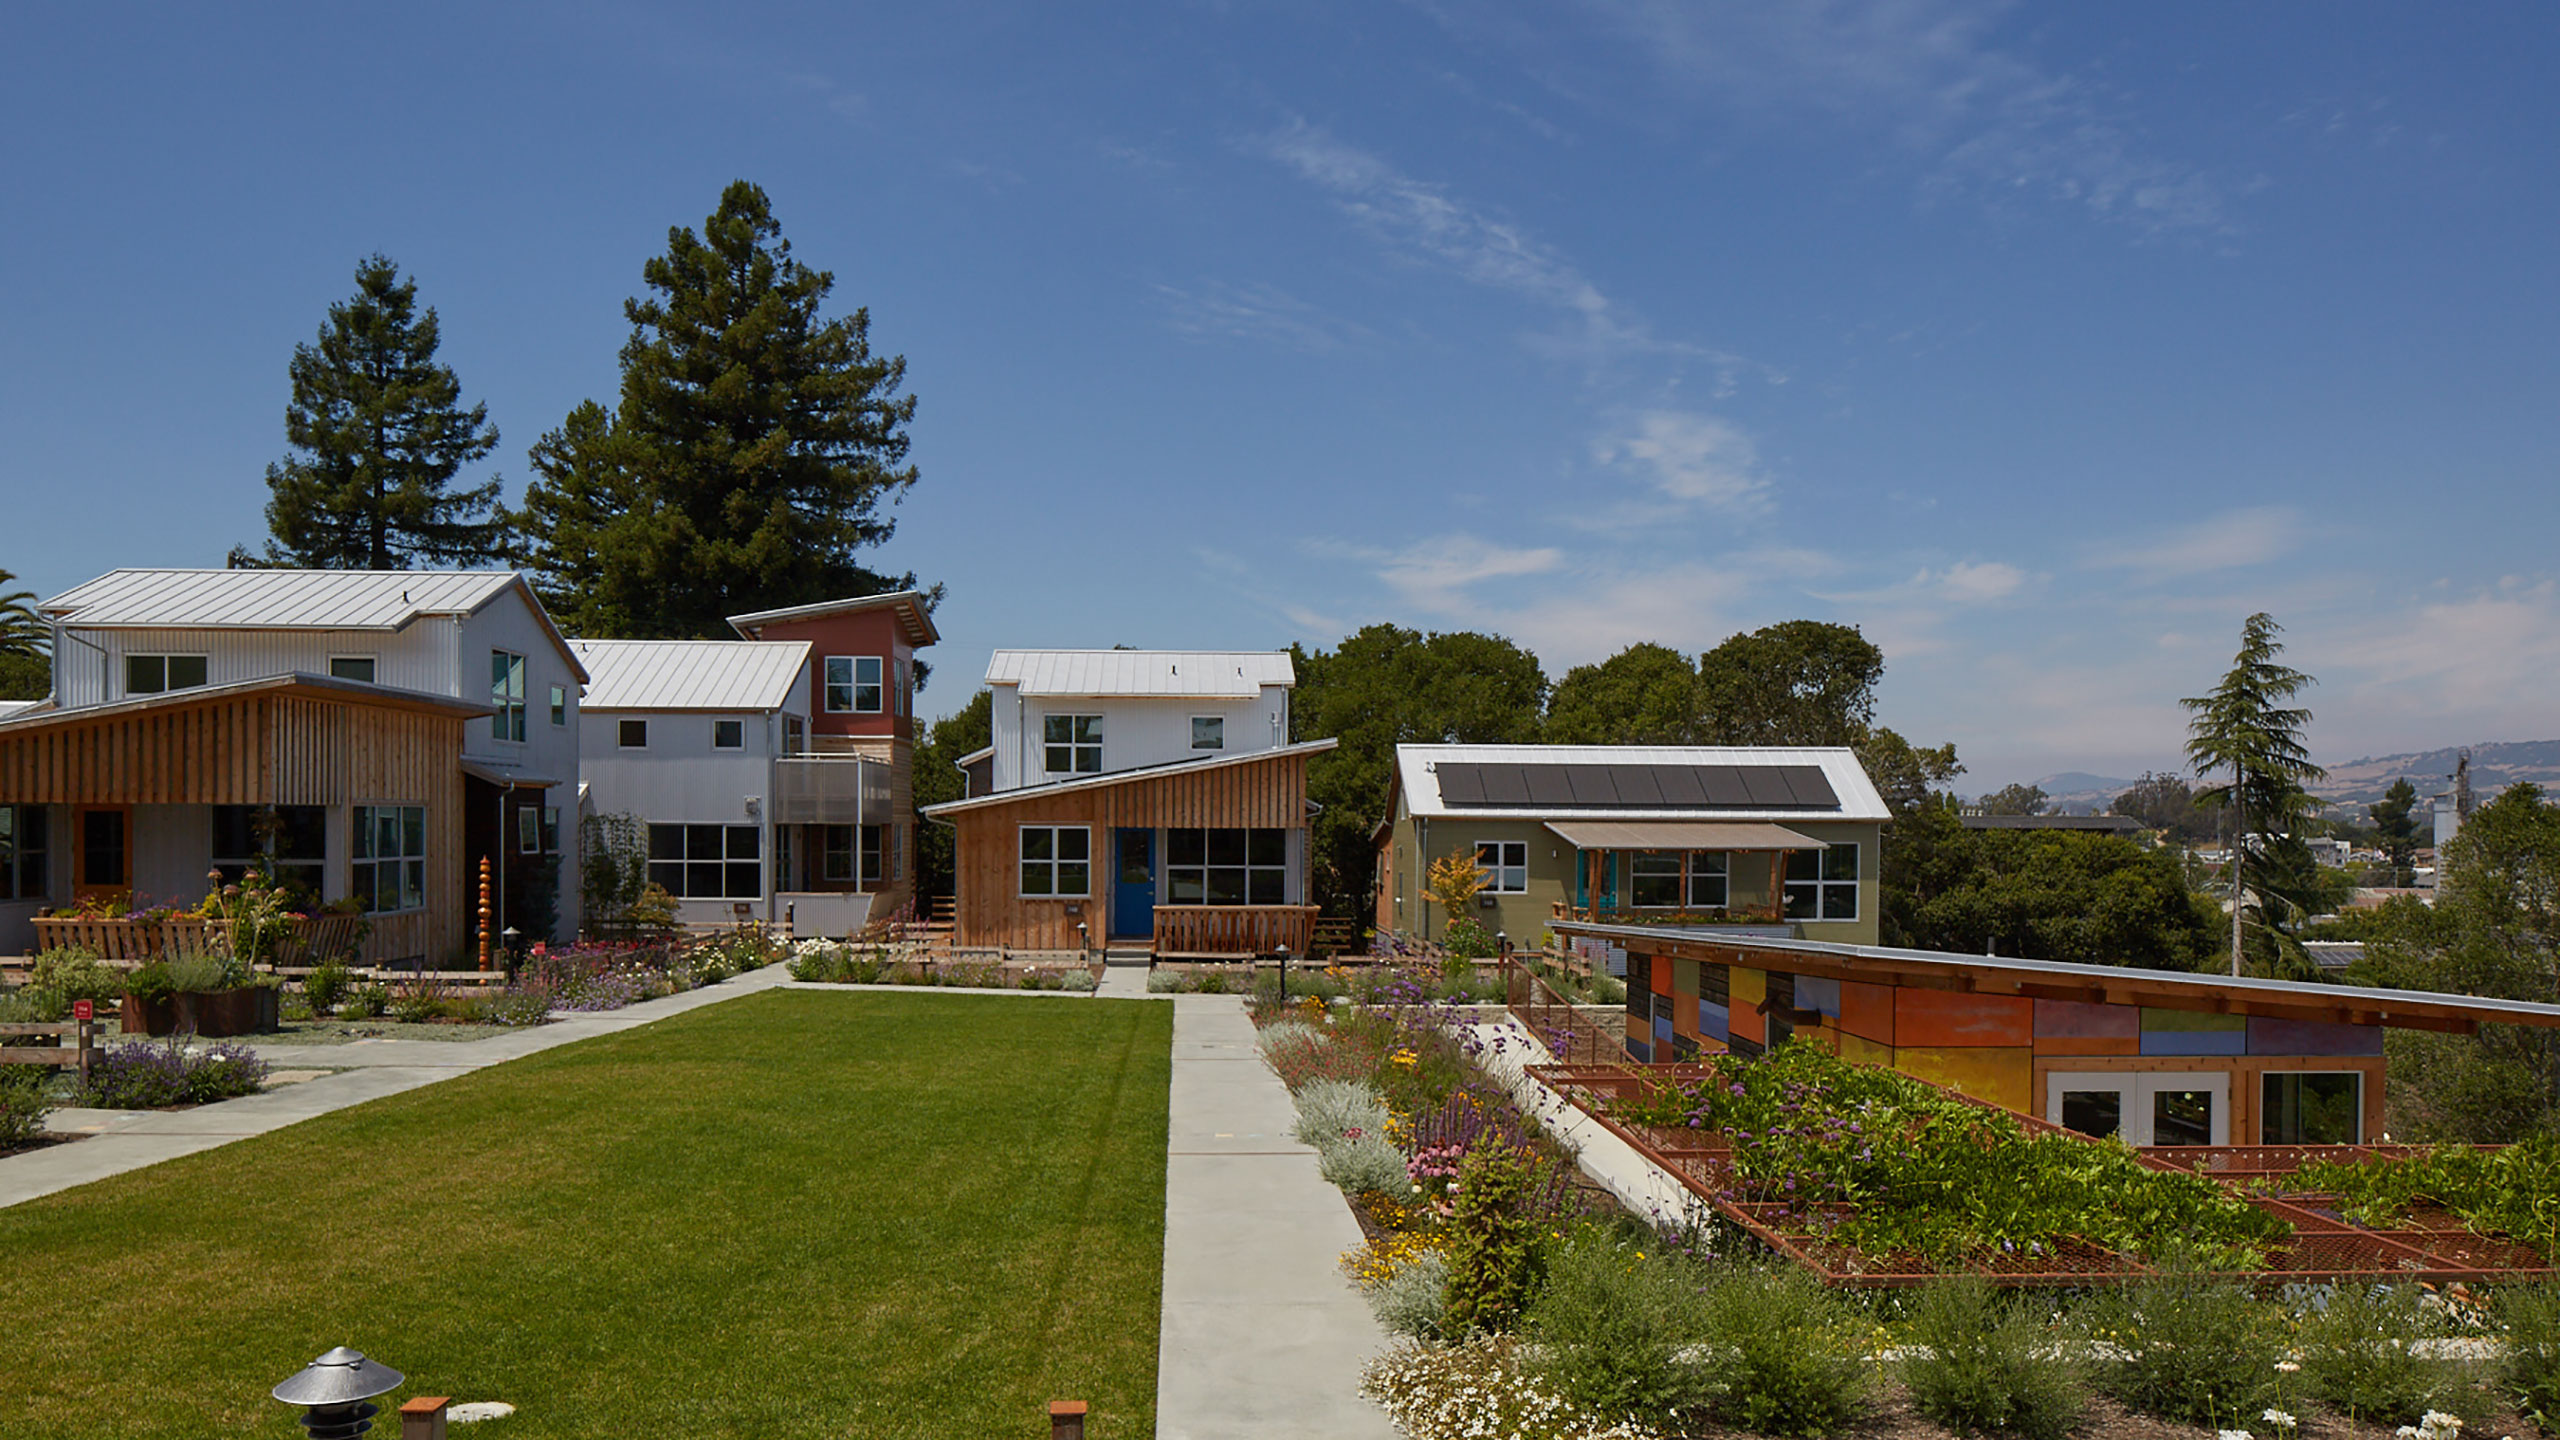 Sustainable-Architecture-Sonoma-County-Keller-Court-houses-around-courtyard-outdoor-design